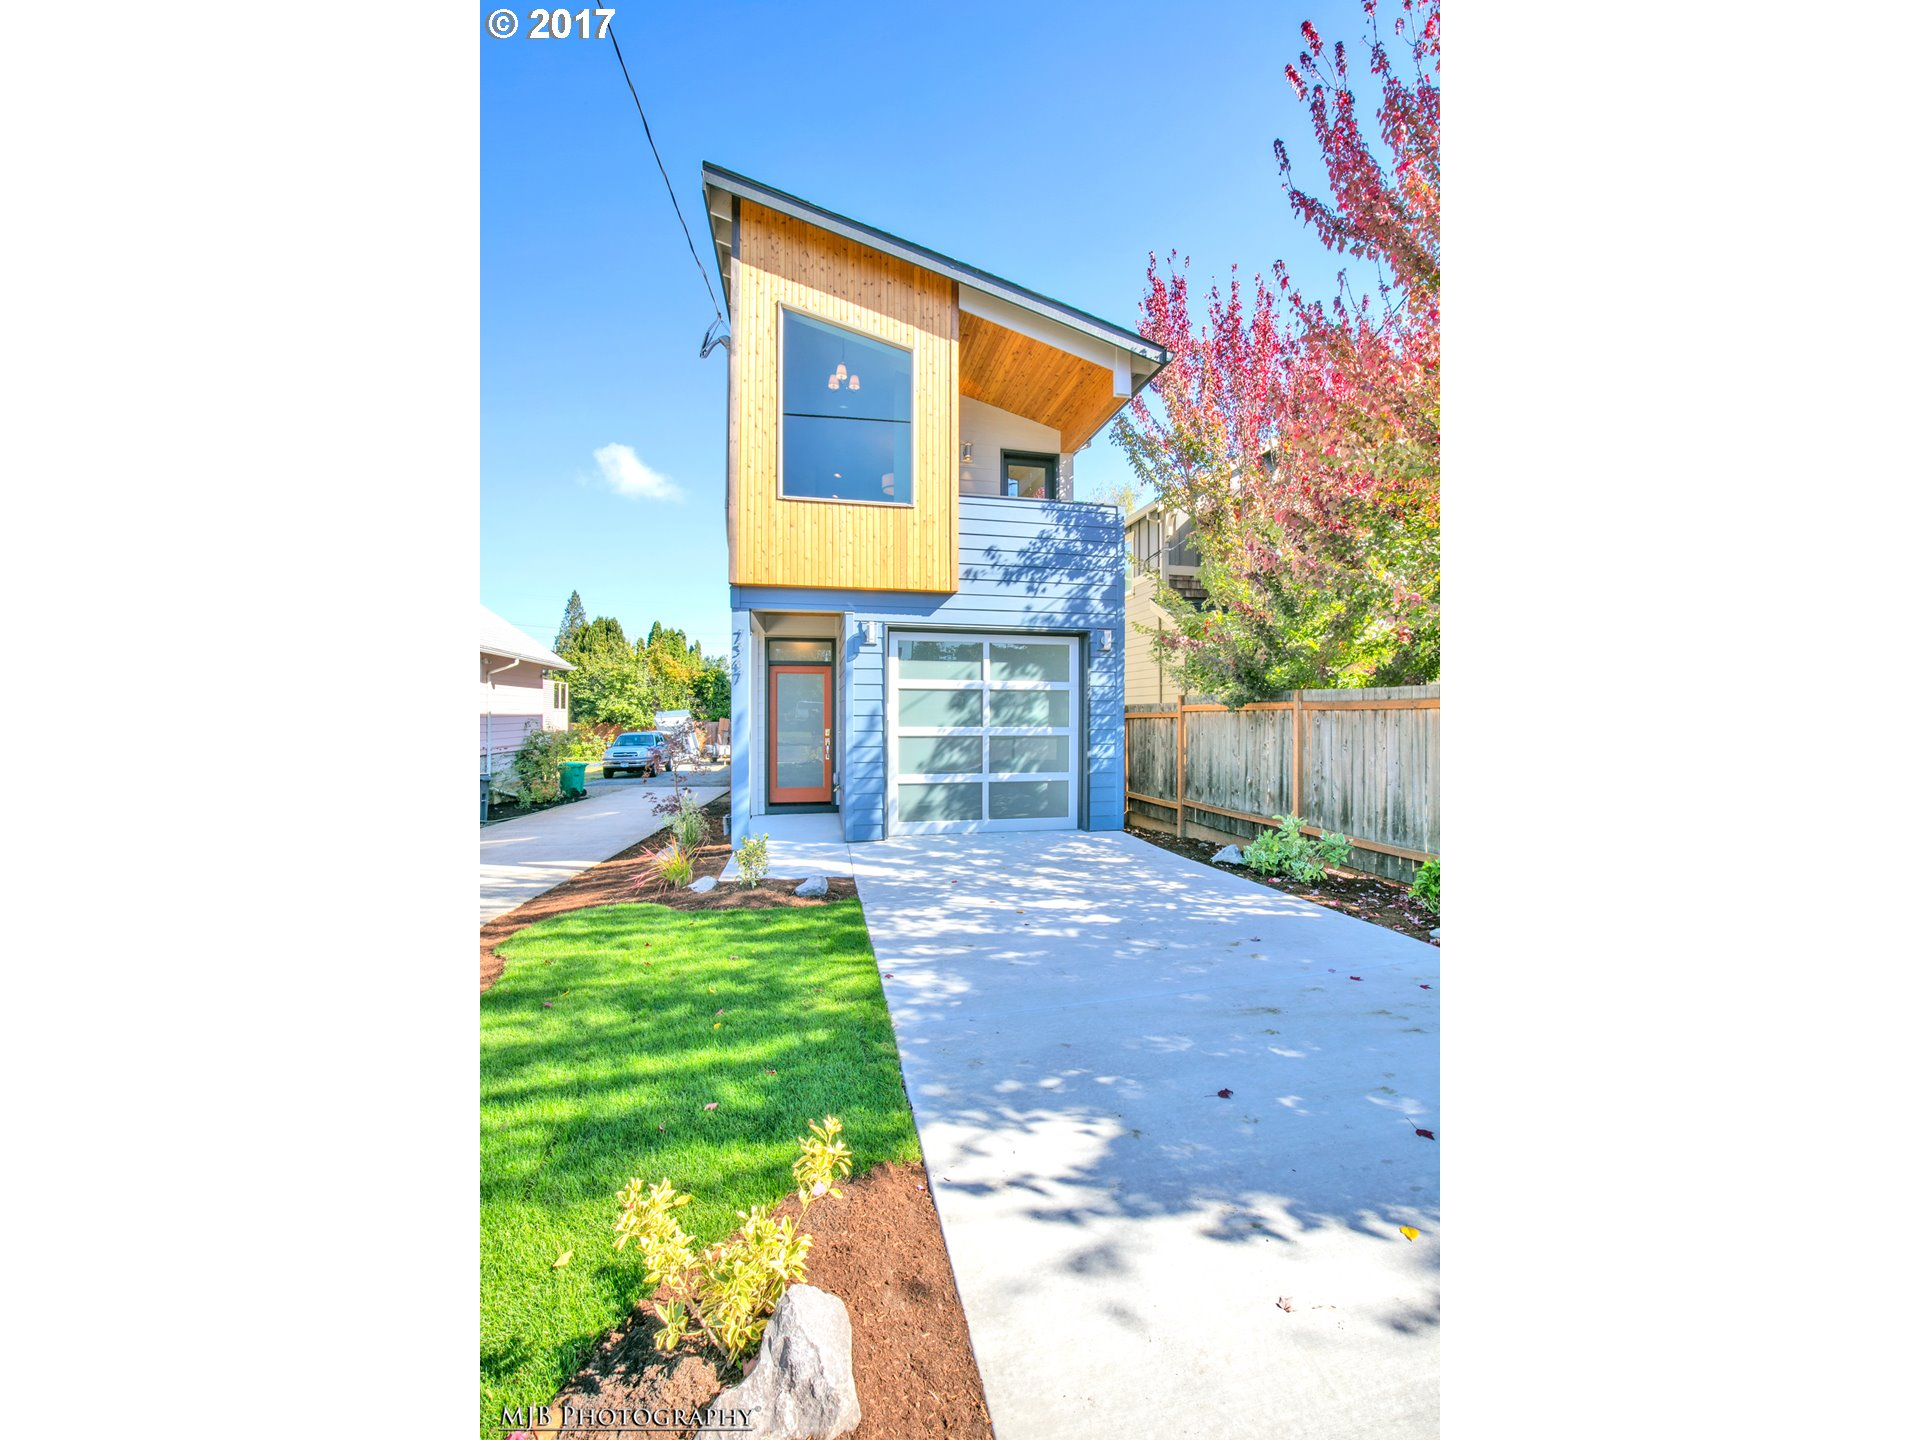 Quality new construction boasting a popular Modern design w/9' ceilings & vaults! Located in the popular Kenton neighborhood this homes 45 Walk Score & 83 Bike Score. Features inc: 3 spacious bdrms, 3 full bths,an oversized attached garage, lots of windows & natural lights, hrdwd flrs, slab cntrtpss, extensive tiles & atten to details.Construction will begin in April & is scheduled for completion approx. end of Aug 2017. Must see!